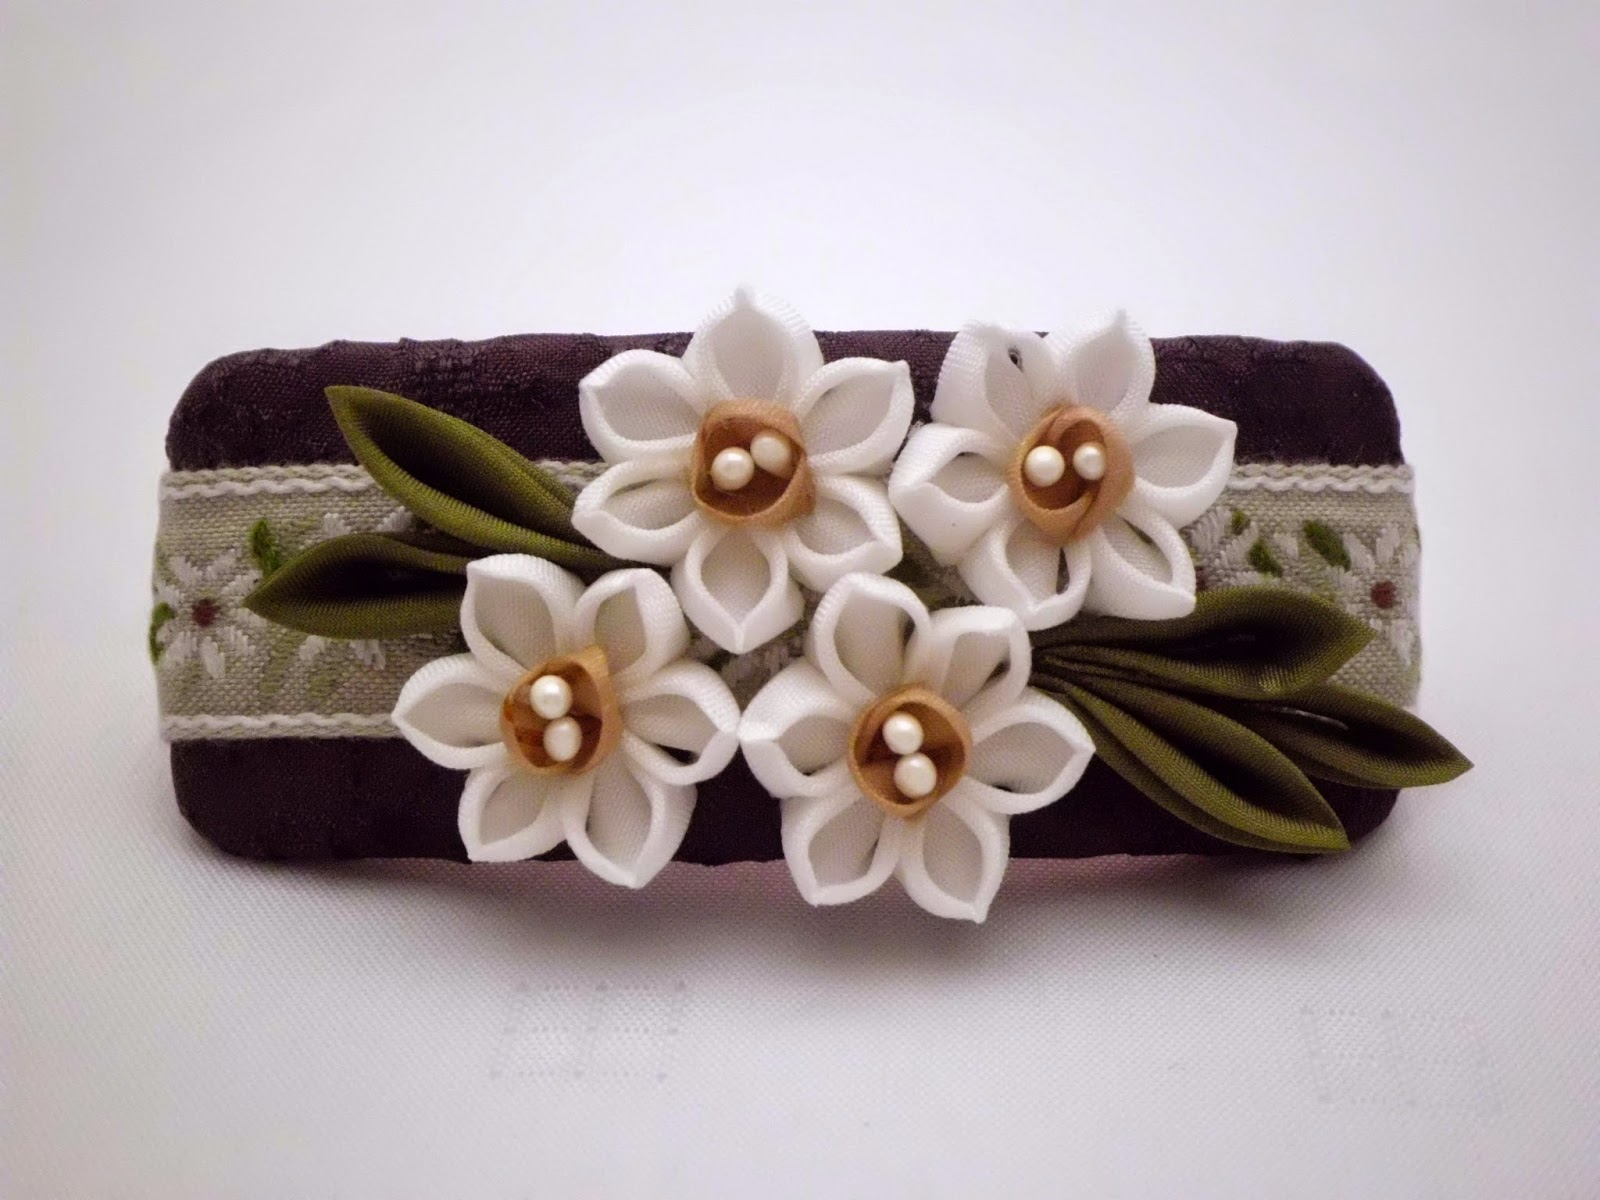 https://www.etsy.com/listing/225415409/daffodil-hair-barrette-french-barrette